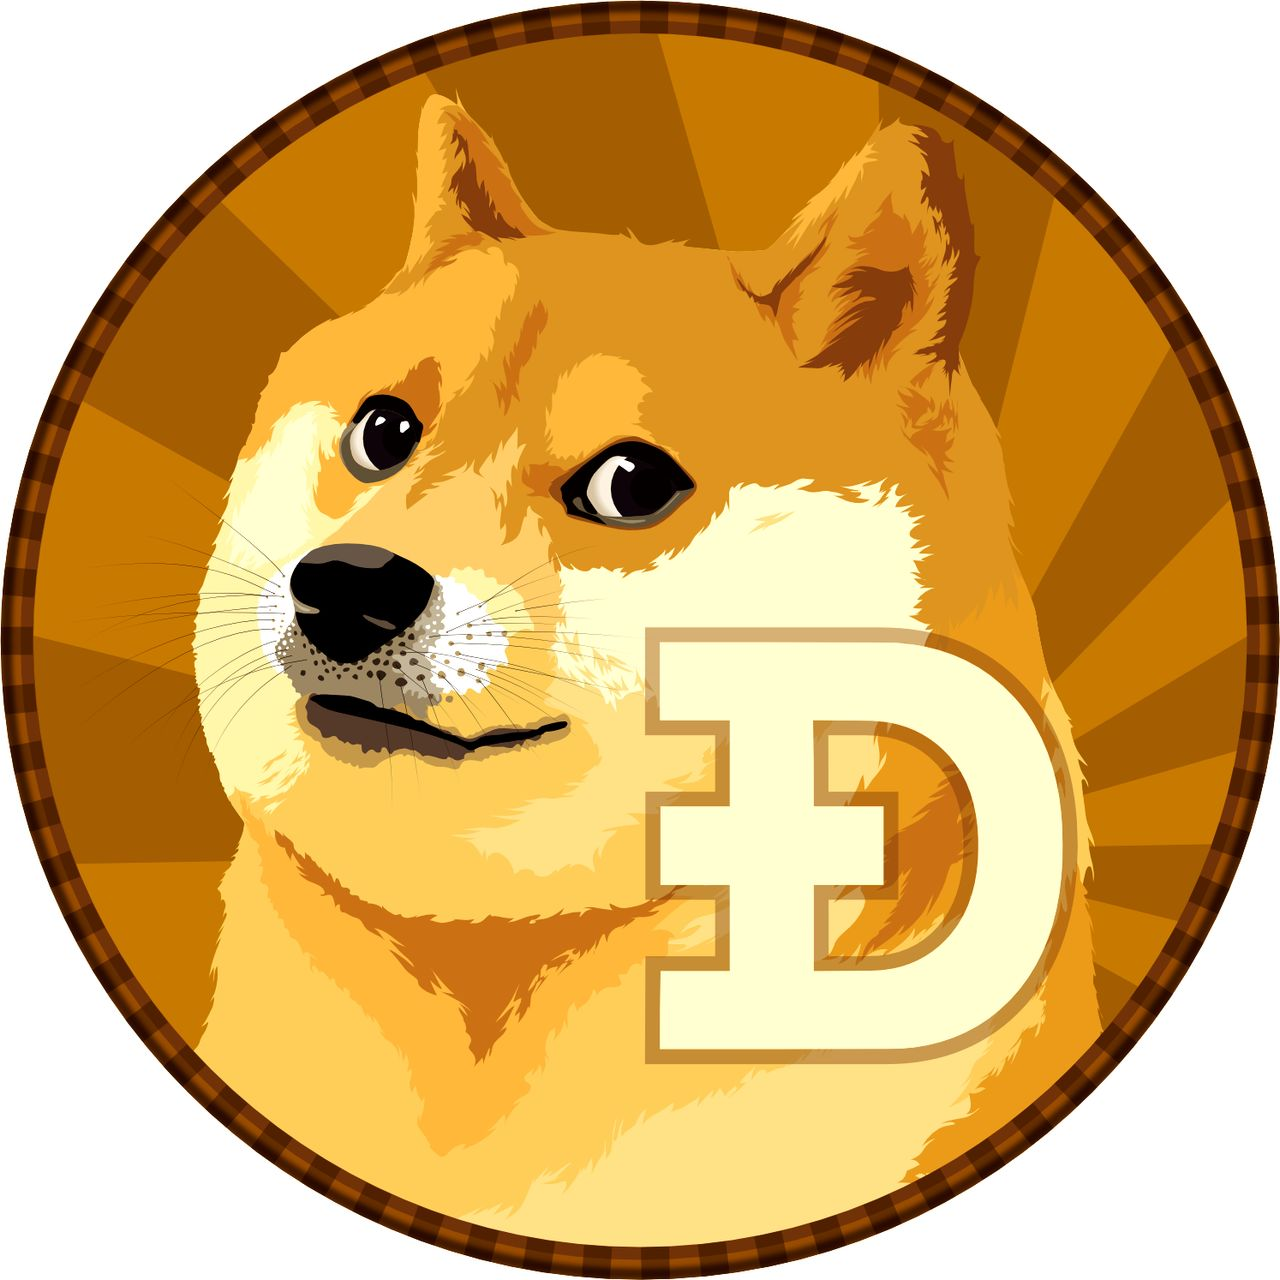 Wanna give doge?